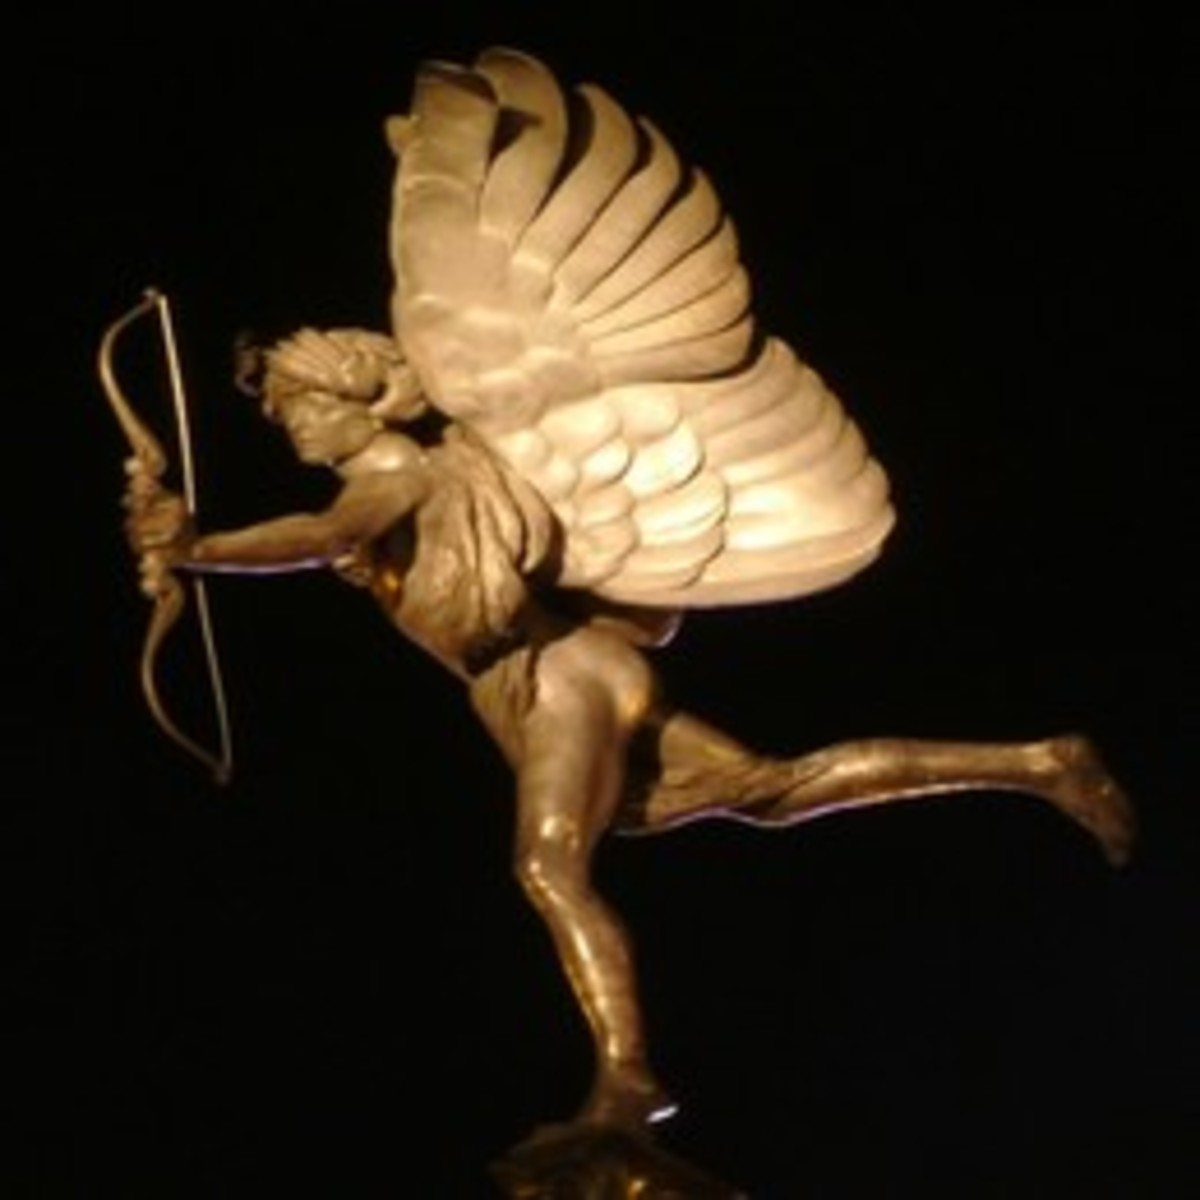 100 CUPID PICTURES | Free Images of Cupid